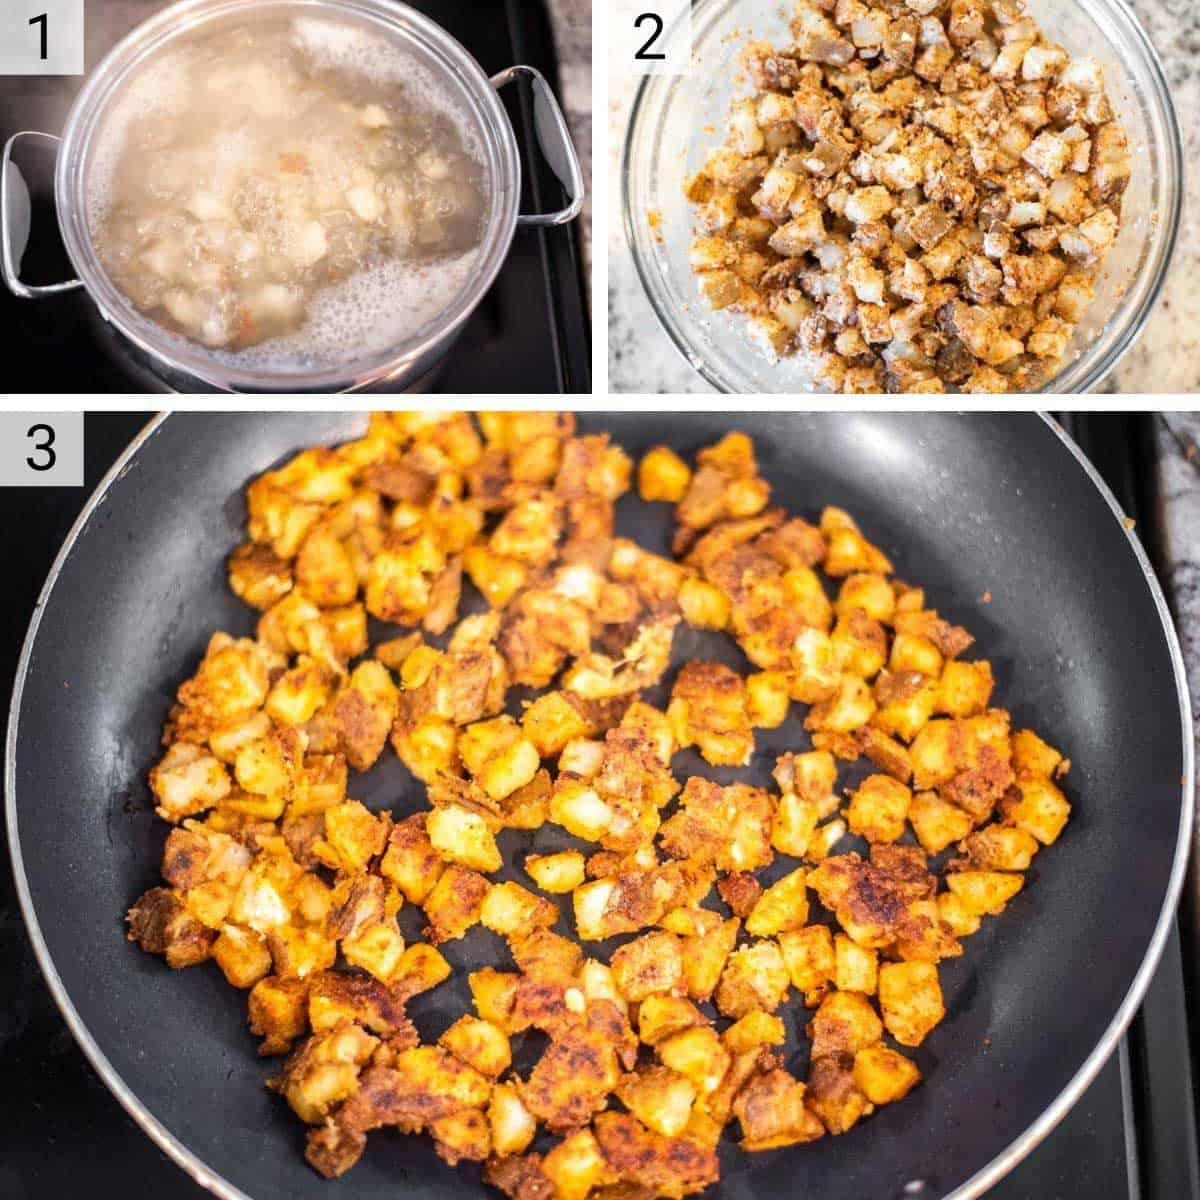 process shots of boiling potatoes before adding spices and cooking on stove top